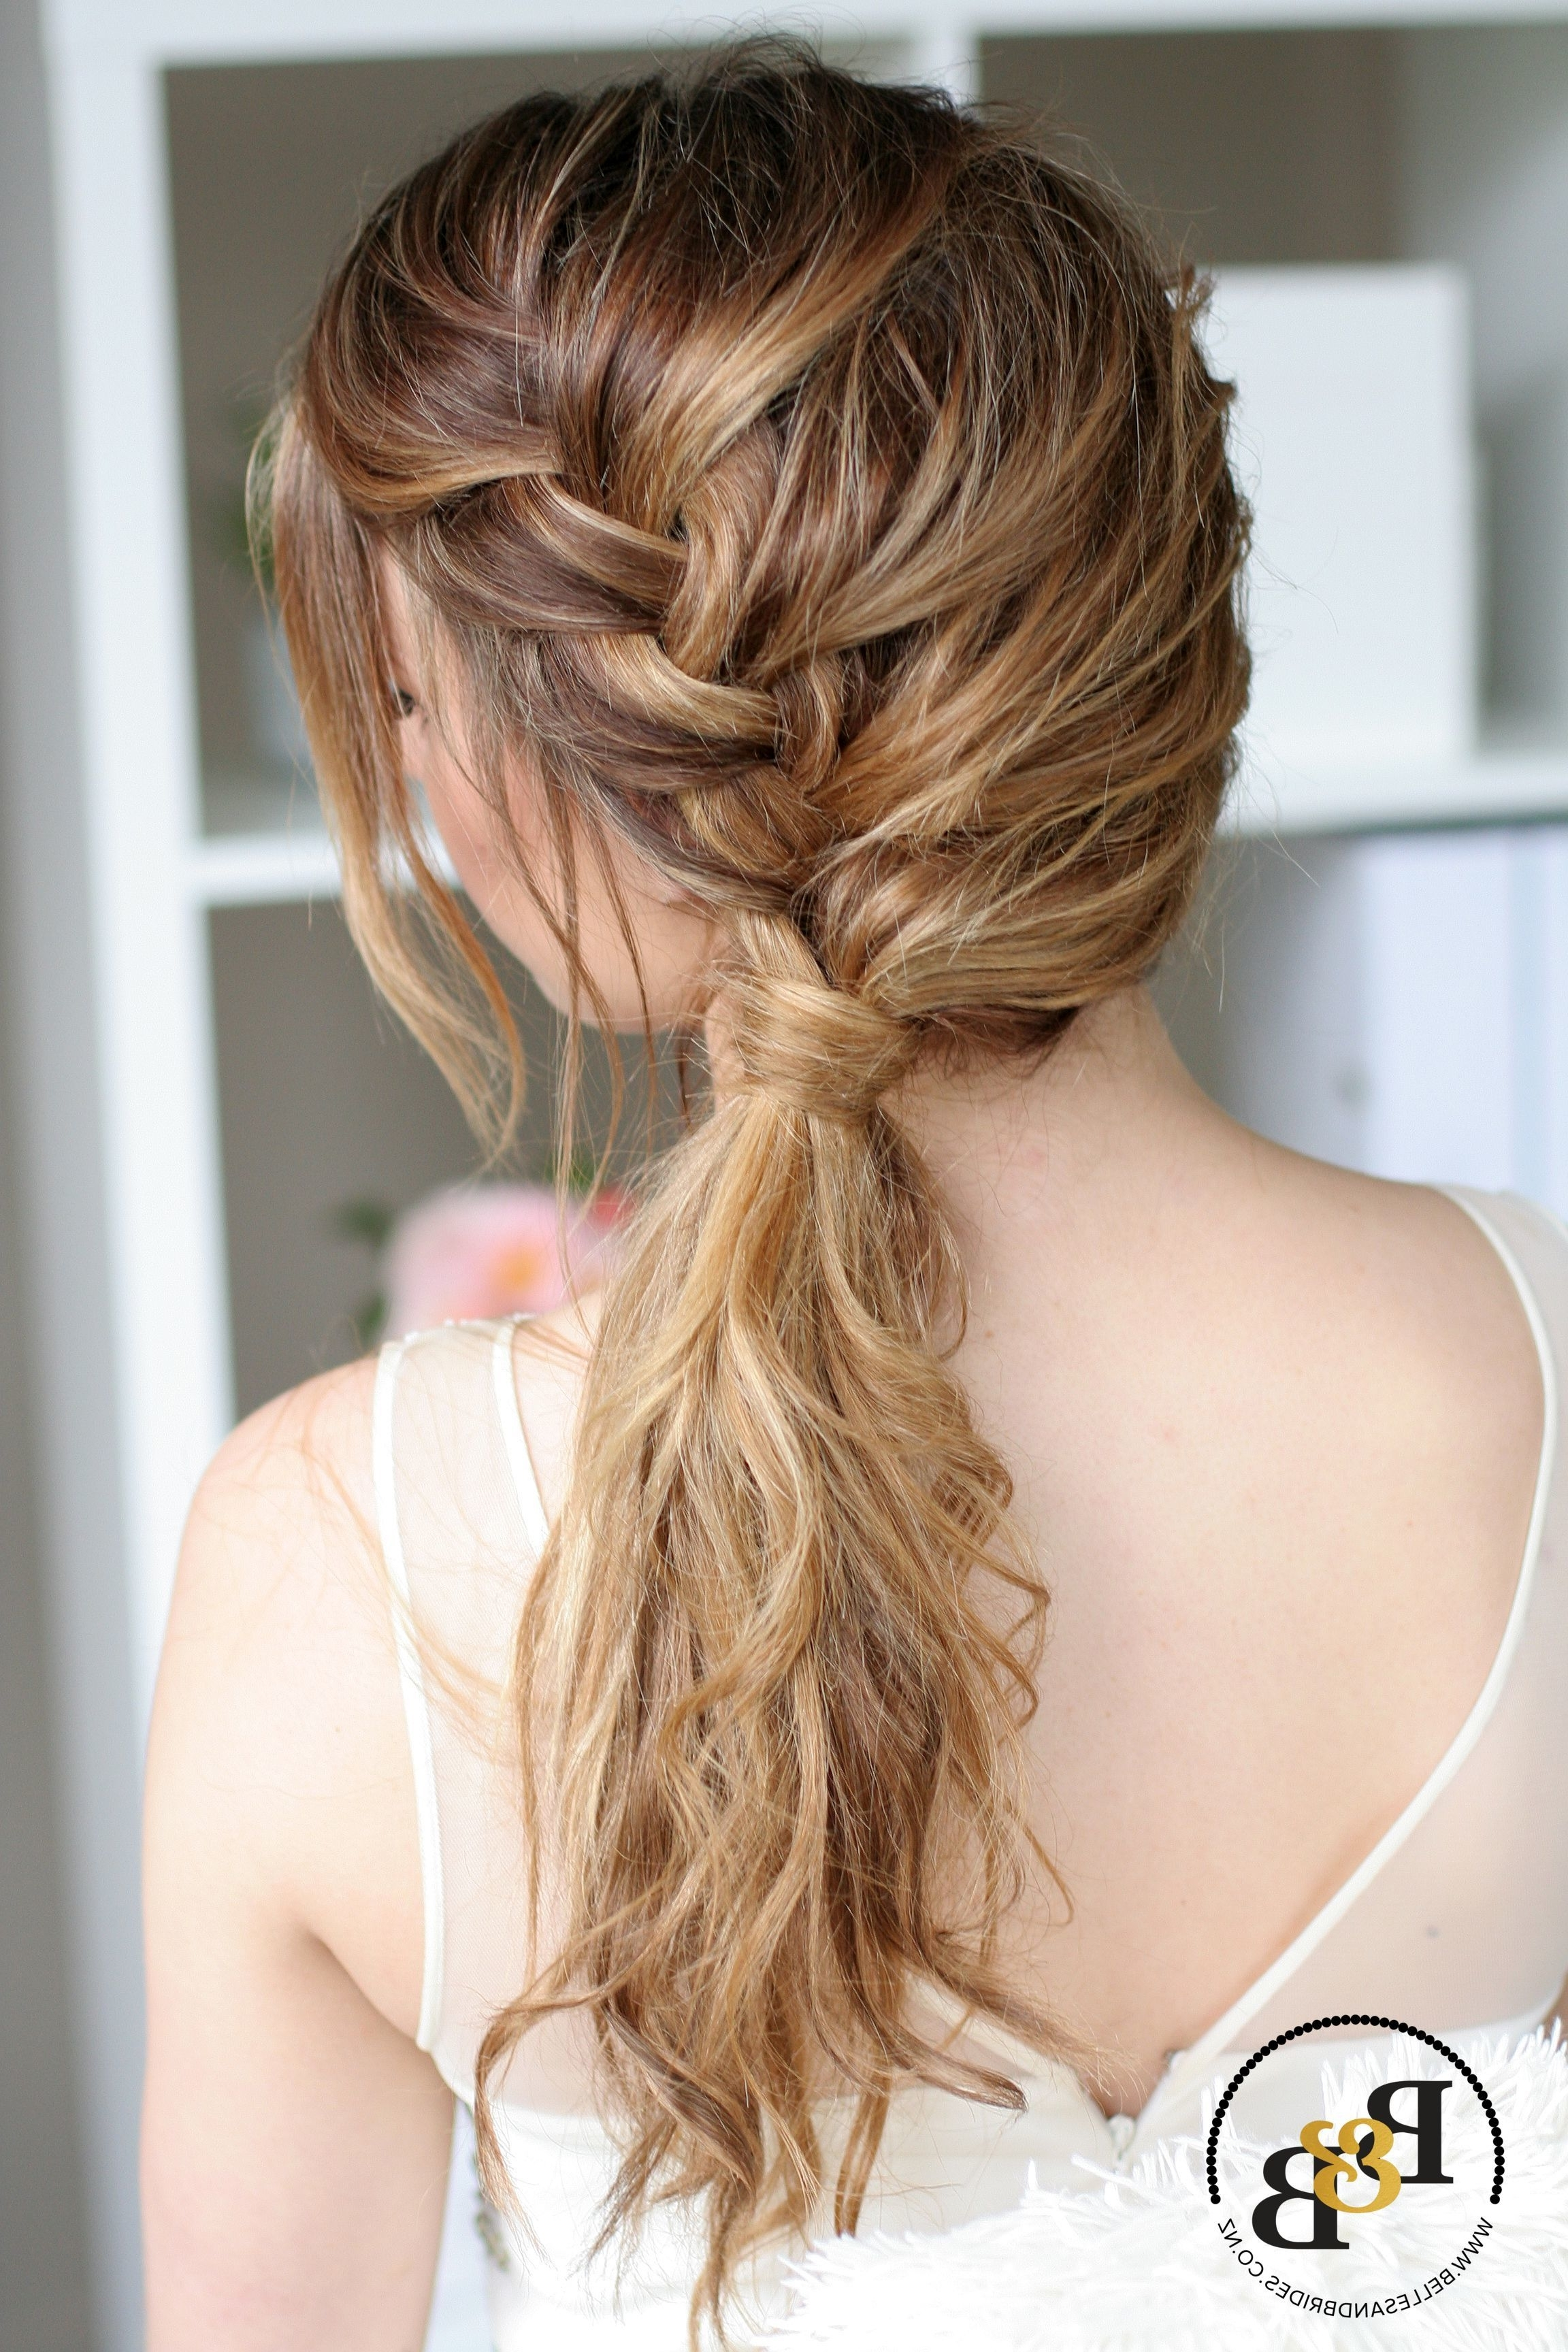 Famous Wedding Hairstyles For Bridesmaid Within Wedding Hair Down With Braid #bridesmaidhairwithbraid (View 9 of 15)